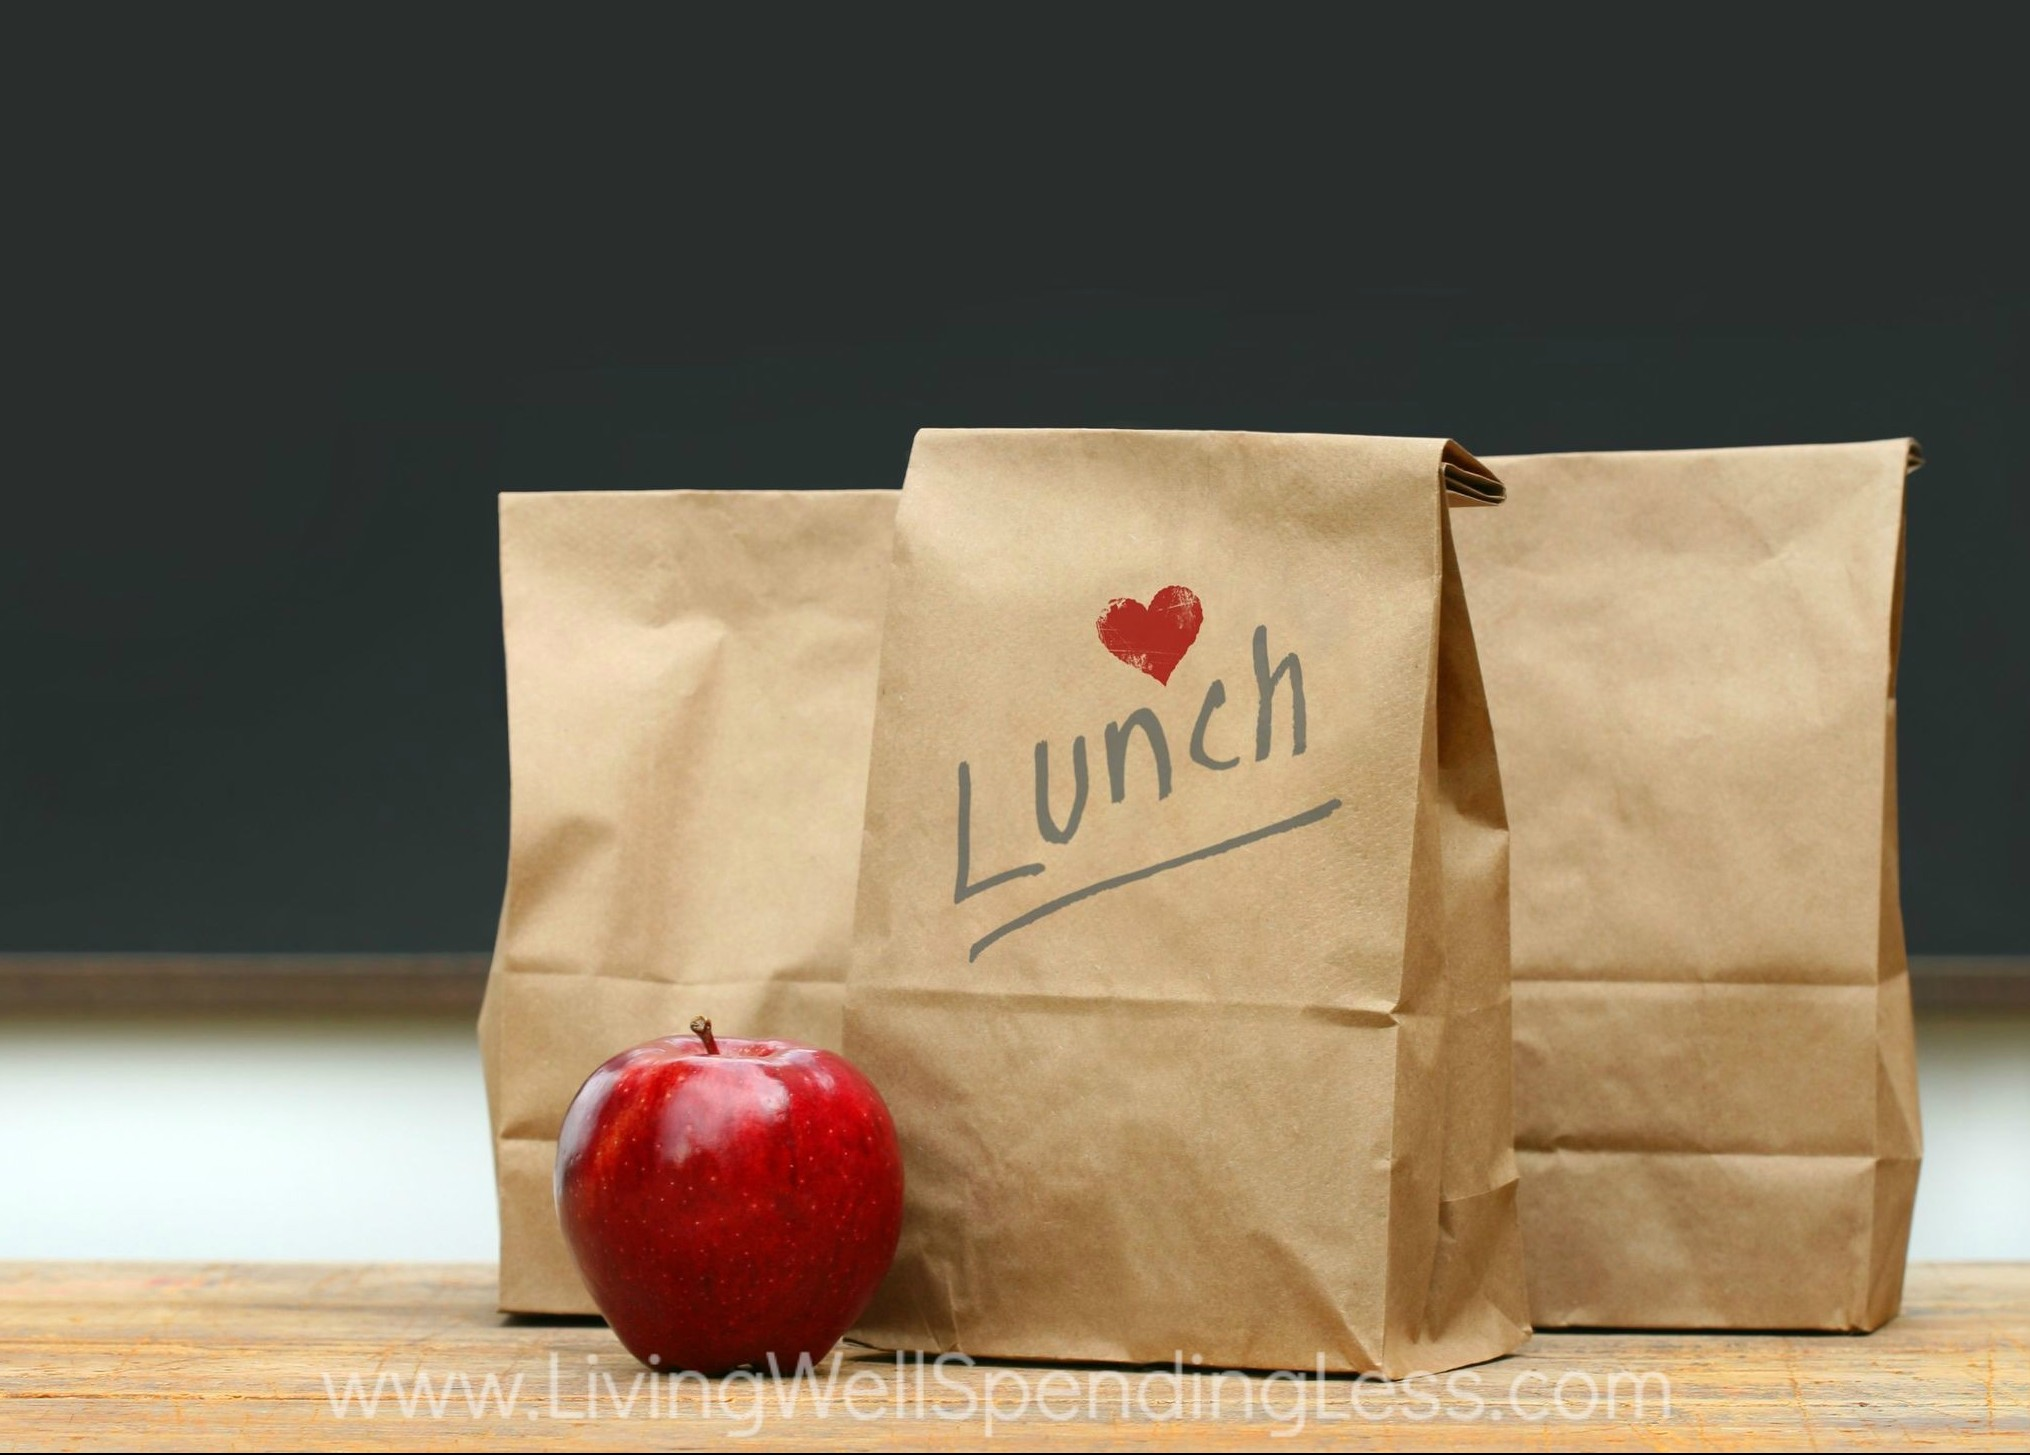 You can prep your meals ahead including lunch. Assemble your brown bag lunches for the entire week ahead.